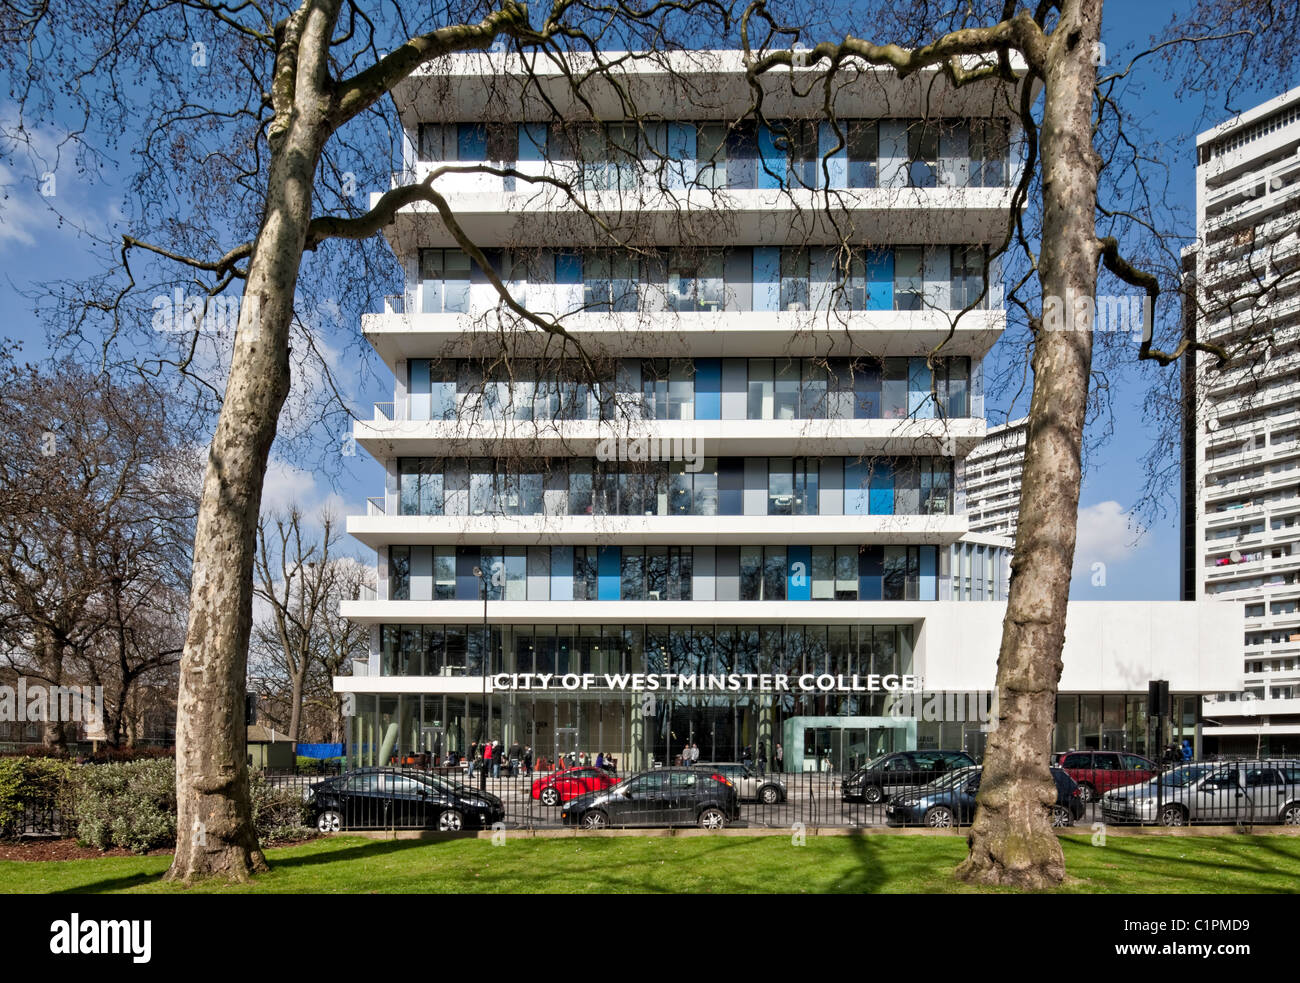 City of Westminster College designed by schmidt hammer lassen architects. - Stock Image